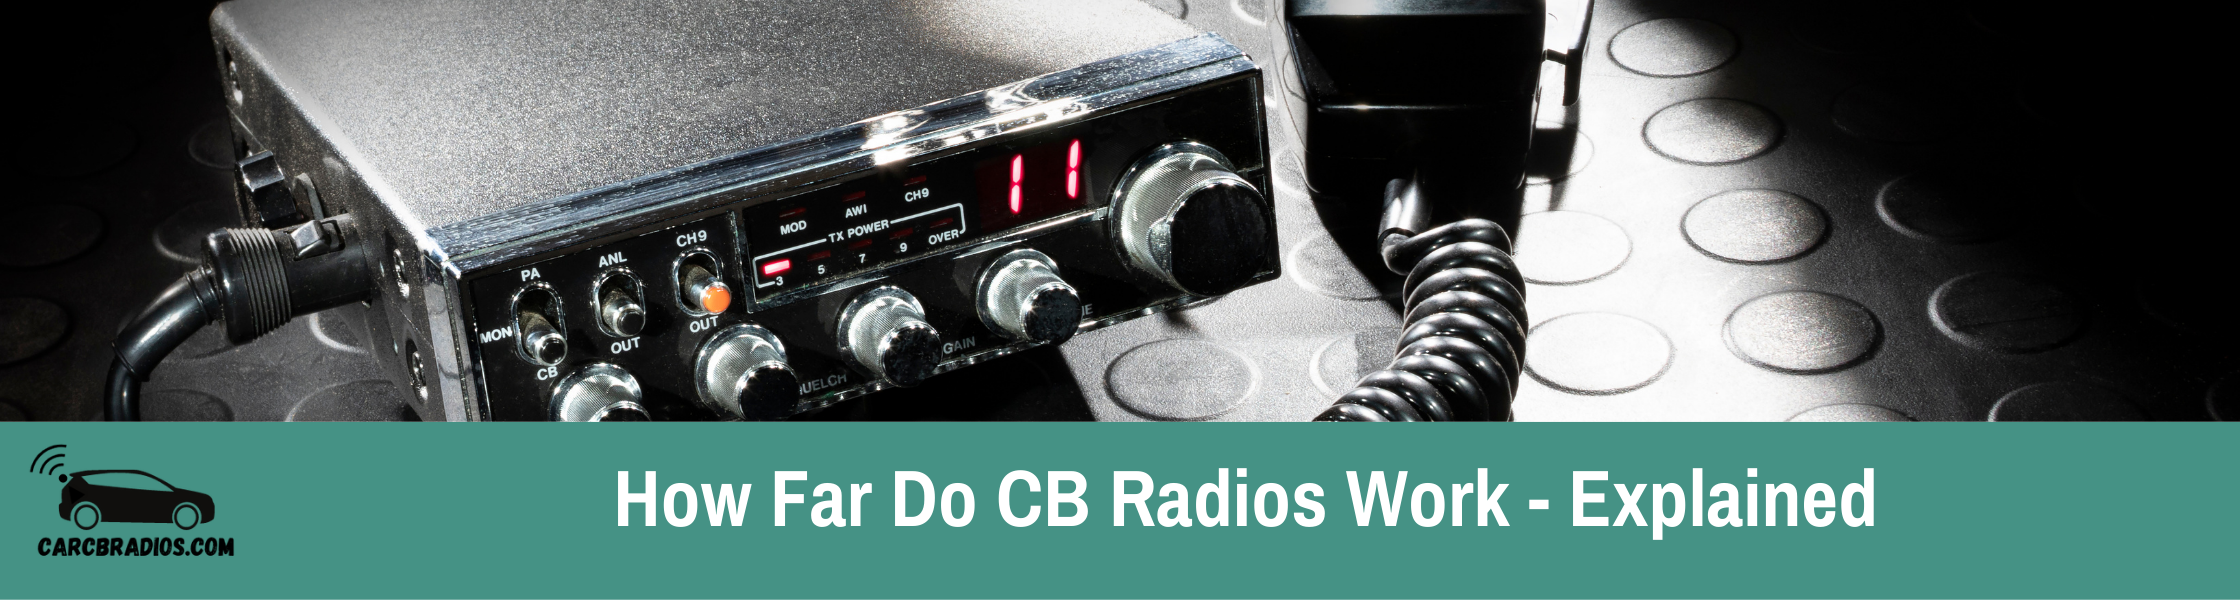 How Far do CB Radios Work: The average range of a CB radio is 3 miles. There are several factors that influence the range including radio power, power source, antenna length & type, antenna quality, height and direction, mount location, installation quality, weather, and terrain.